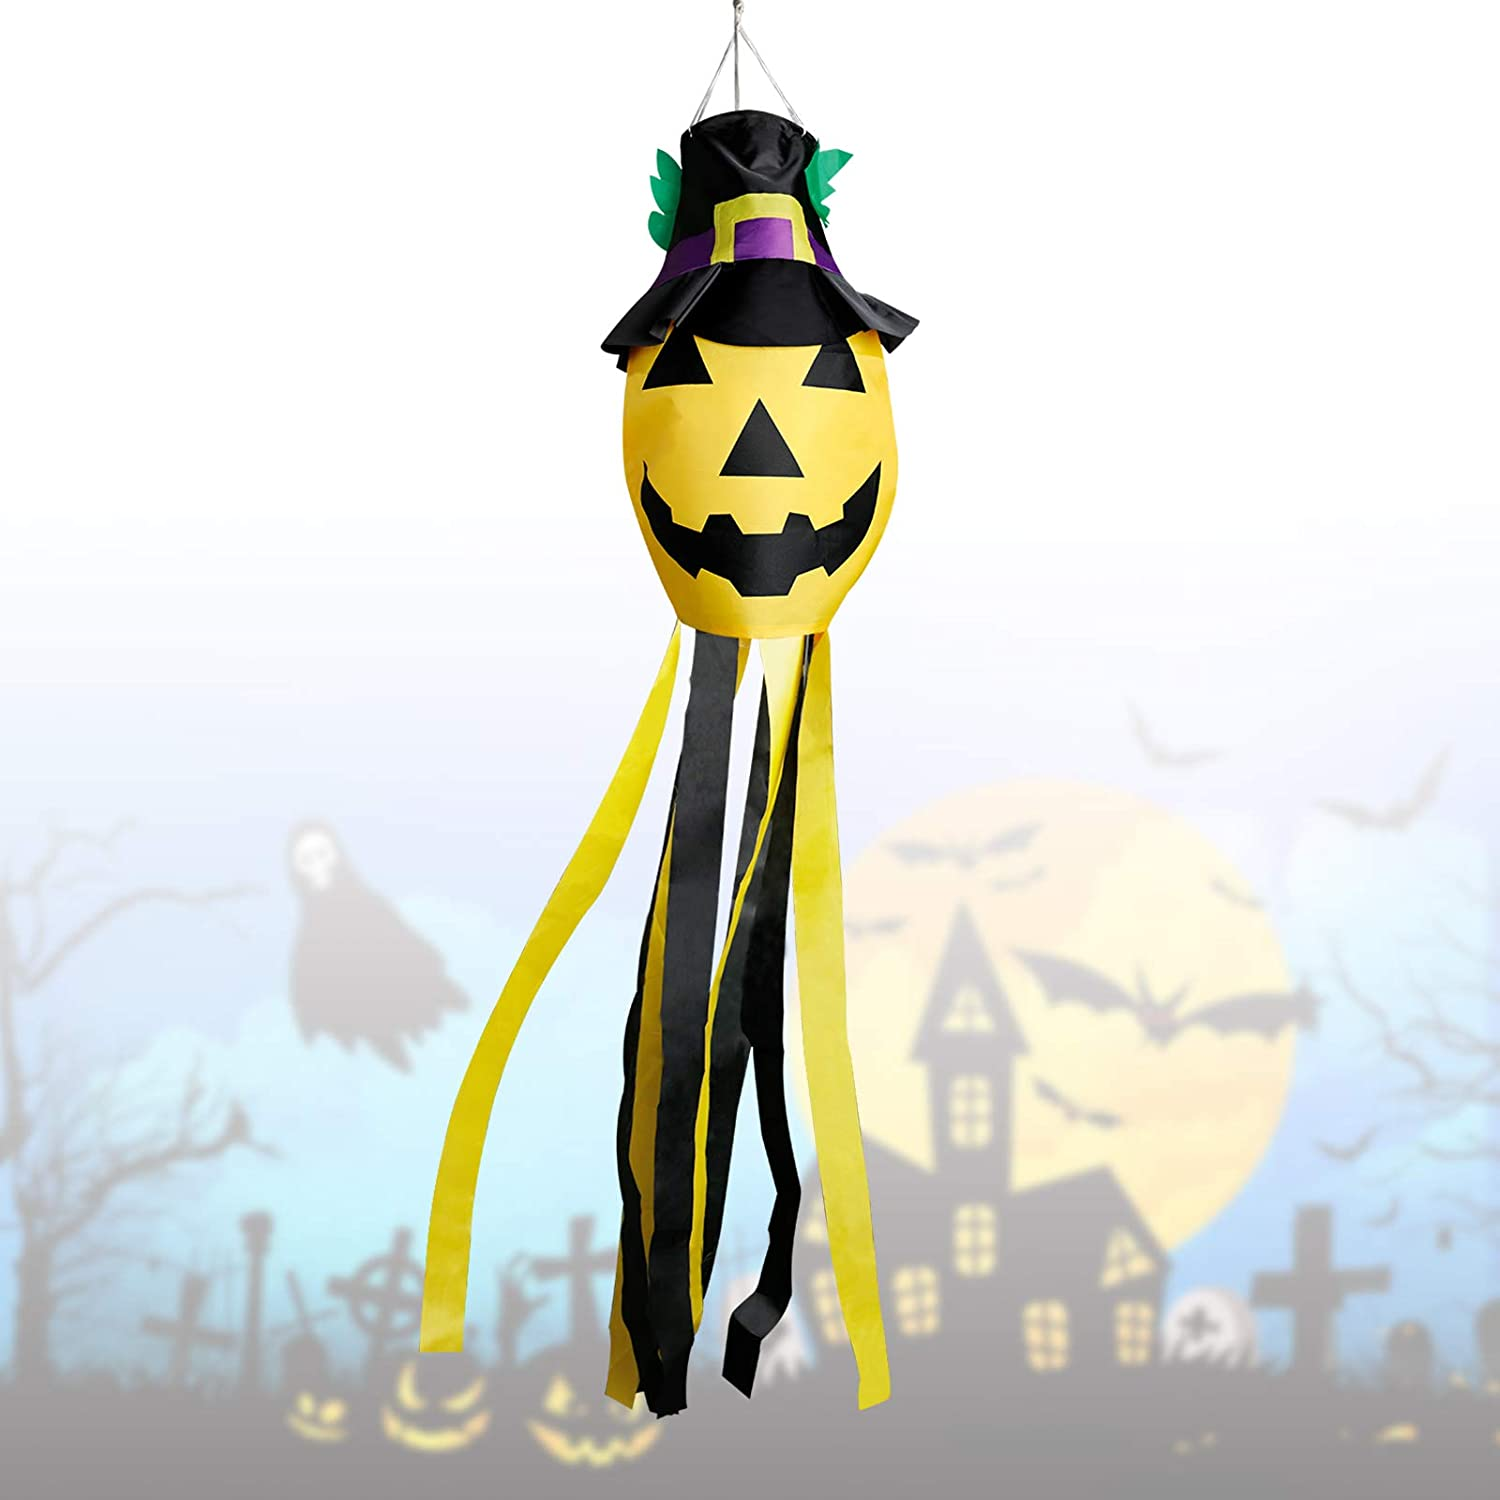 Halloween Windsock Flag,Large Pumpkin Windsock Decoration Halloween Welcome Decoration Tree Hanging Windsock Flag Novelty Halloween Decorations Outdoor Outside for Tree Yard Patio Lawn Garden 51 inch